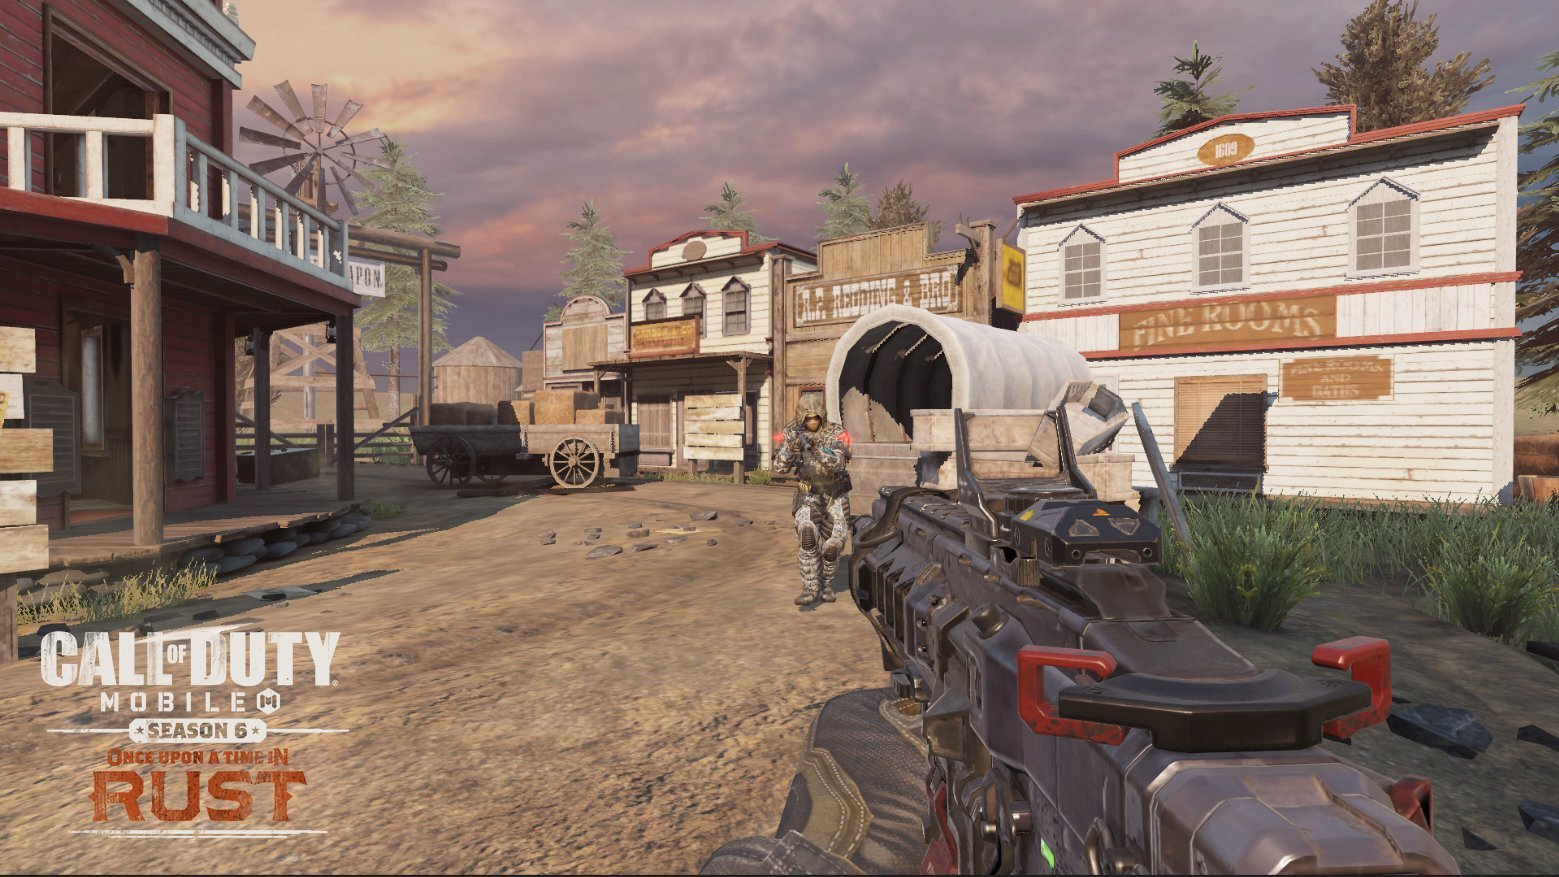 Call Of Duty Mobile Season 6 Launches With Rust And Saloon Maps Vgc